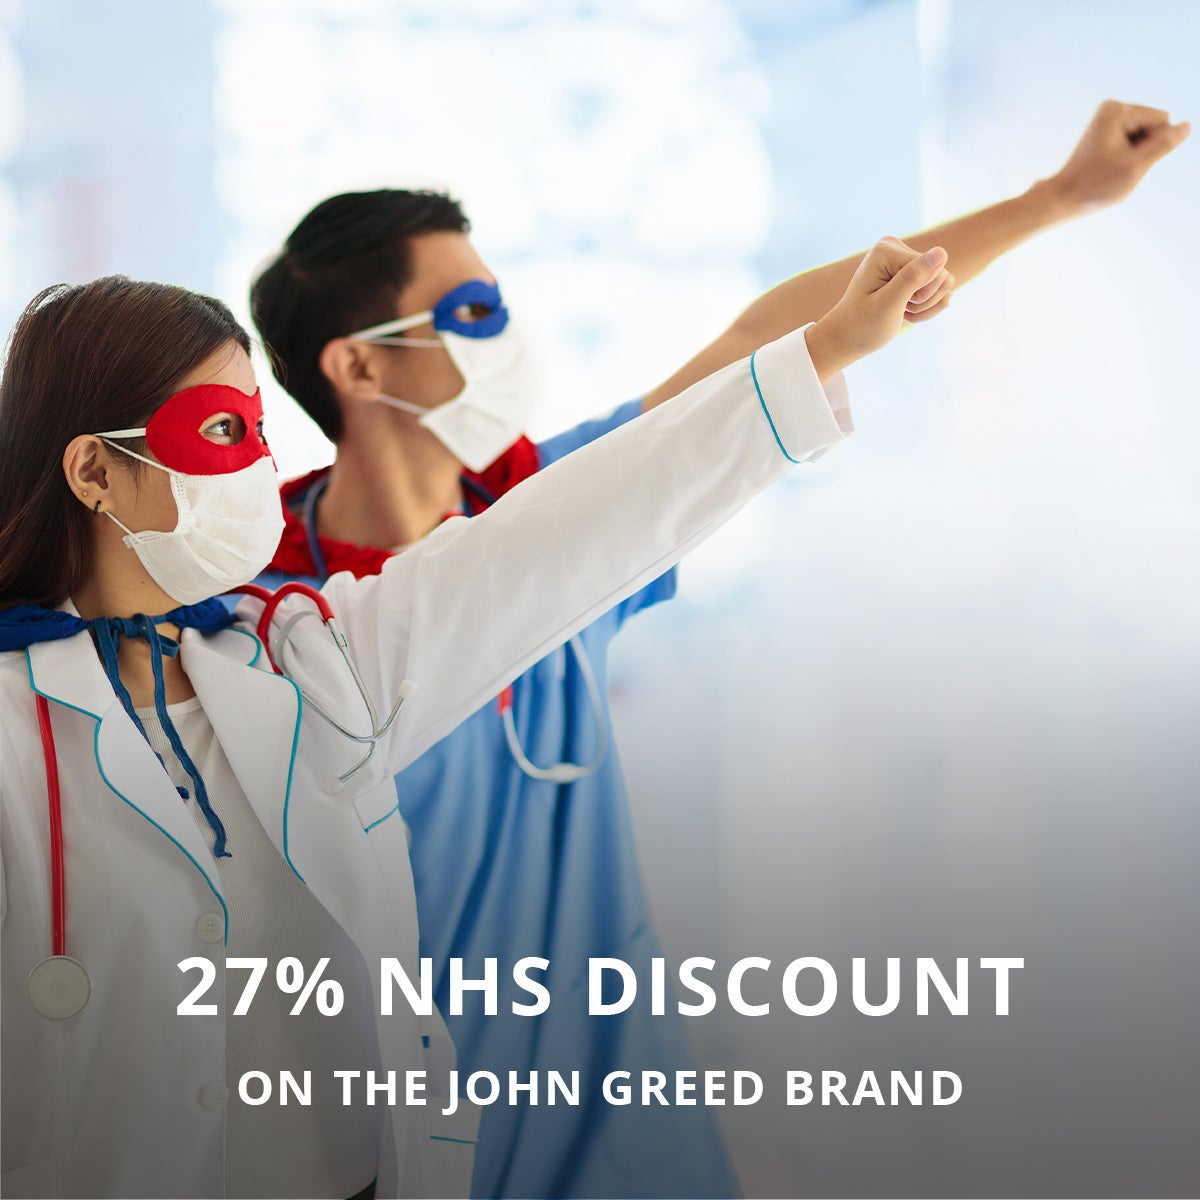 27% Off NHS Discount